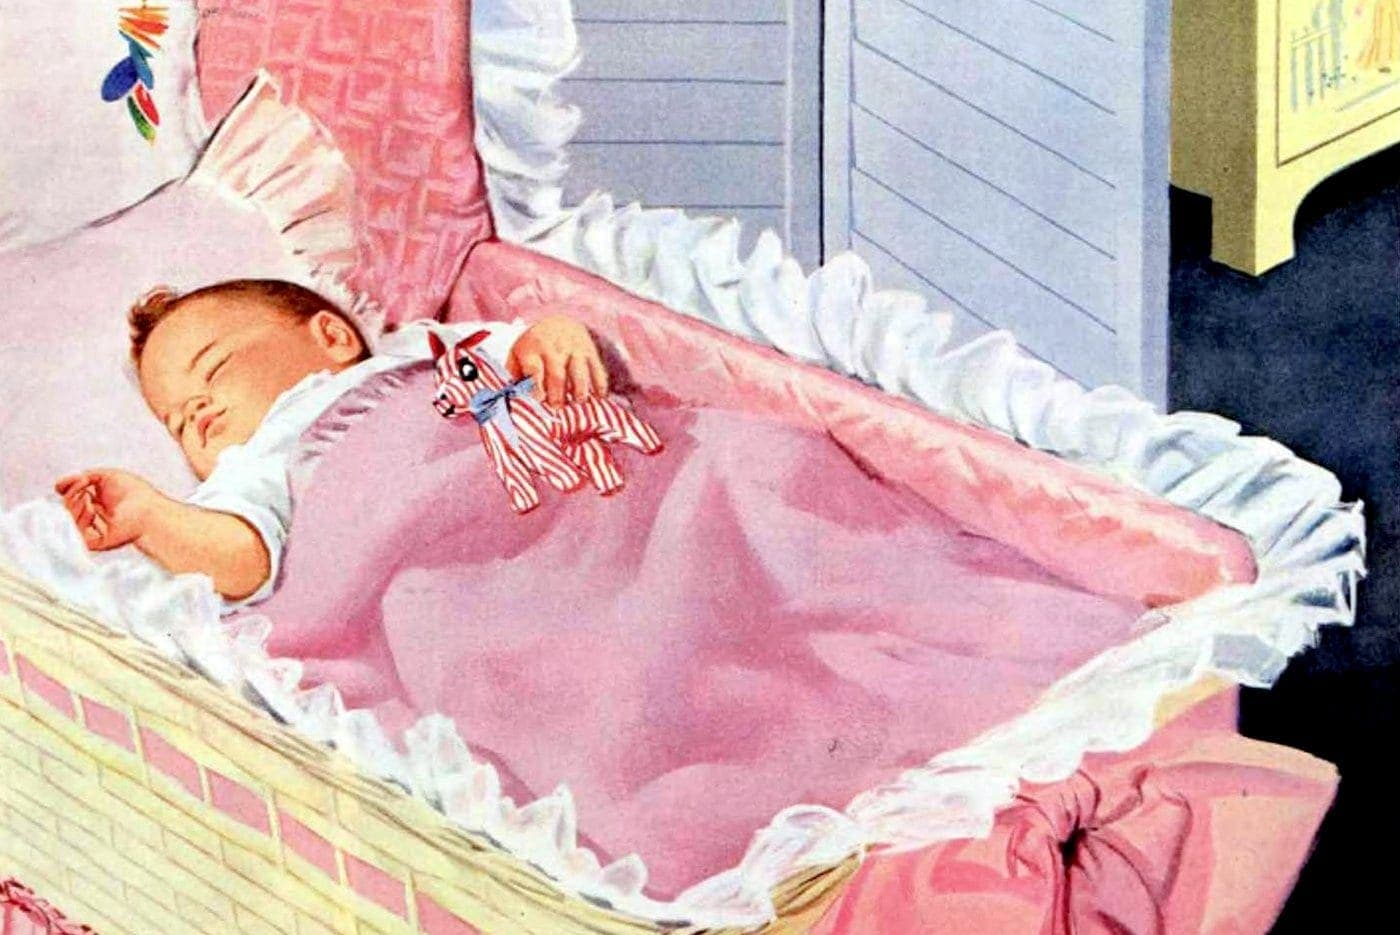 Vintage baby gear from the 1950s